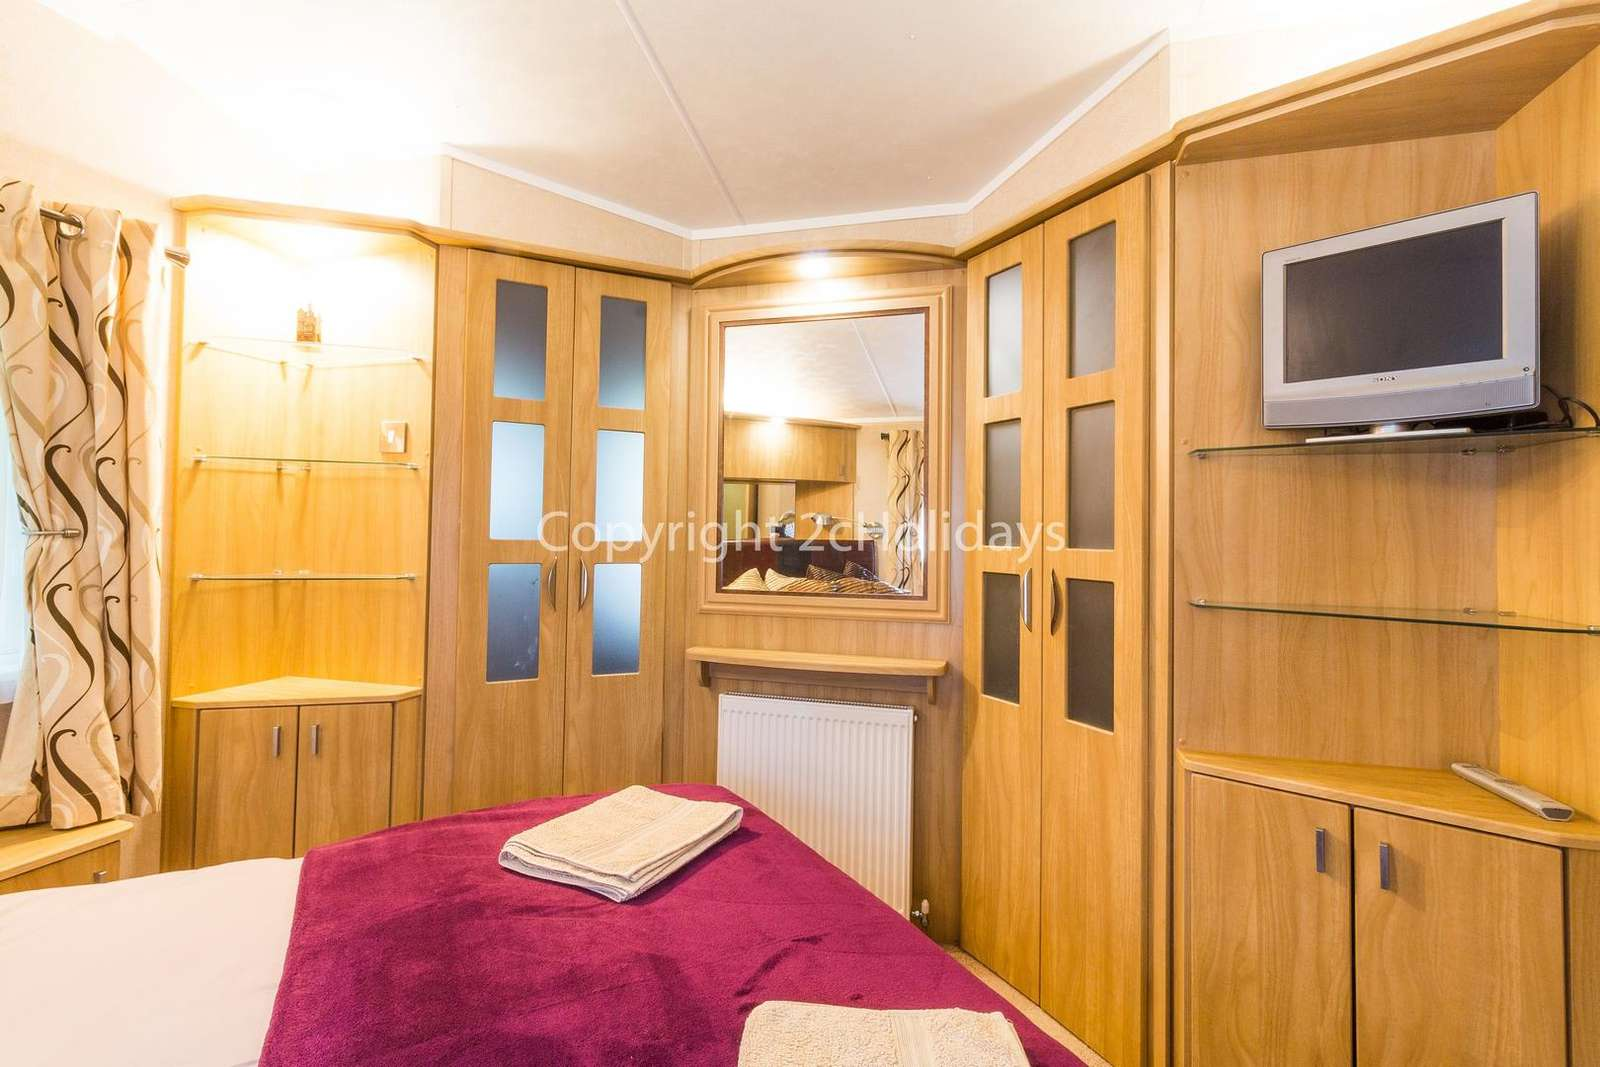 You can find plenty of storage in this master bedroom as well as a TV